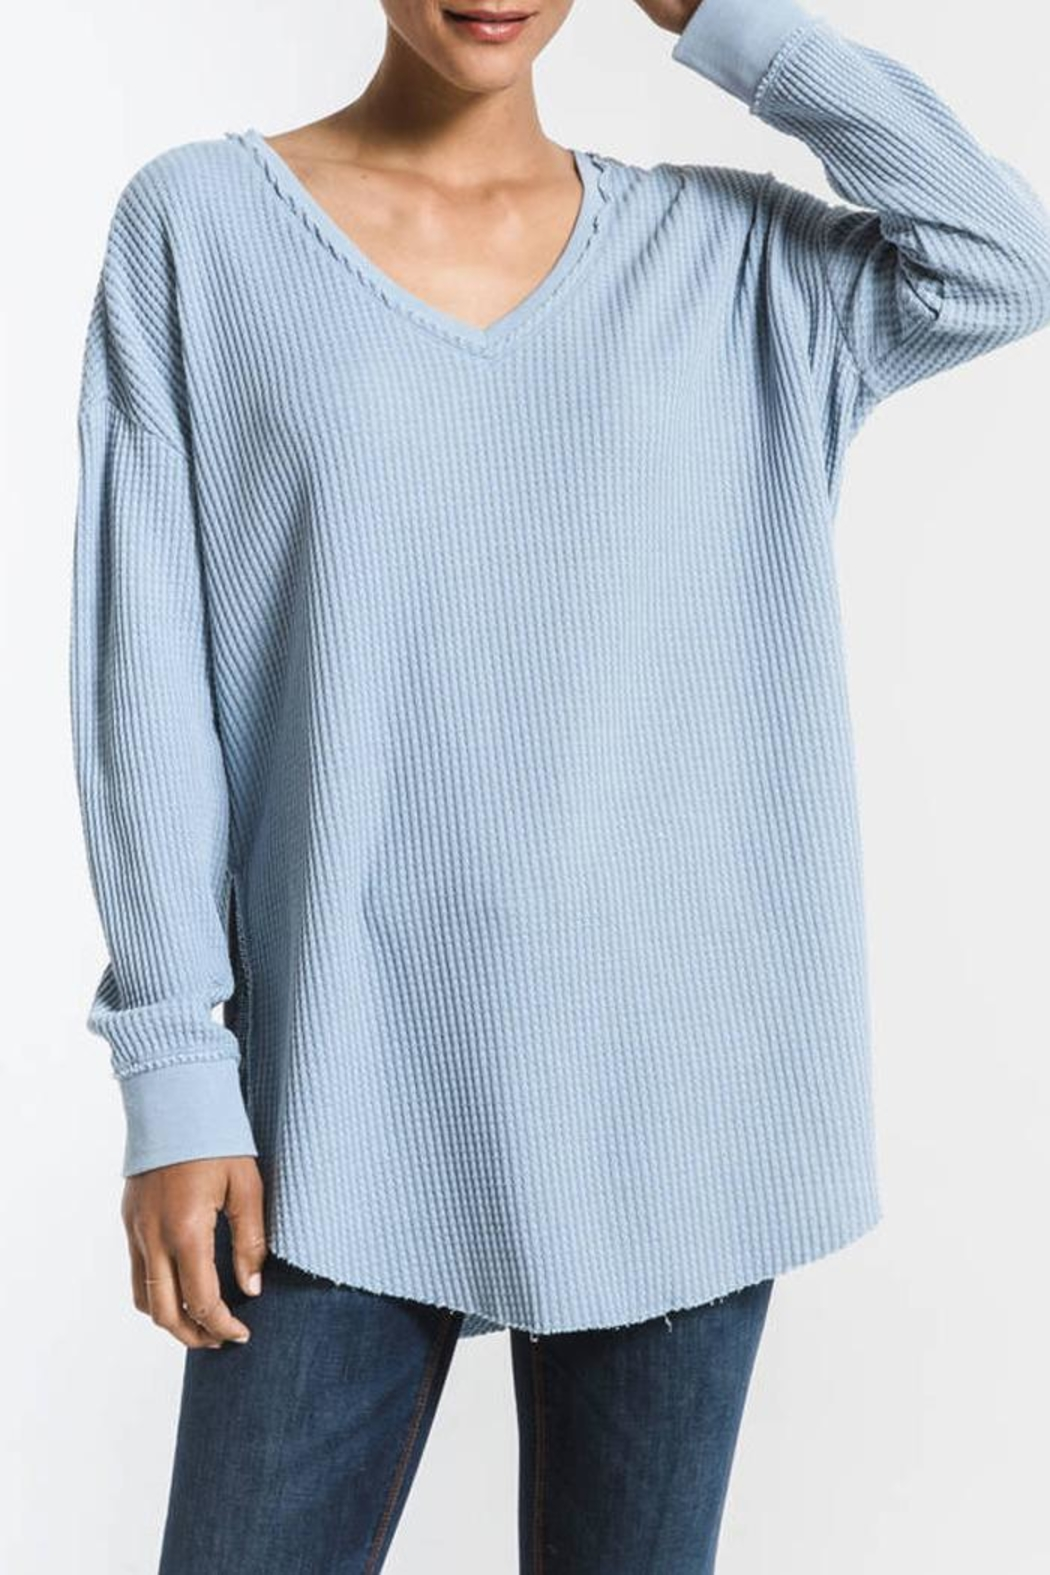 z supply Waffle Thermal Tunic - Front Cropped Image